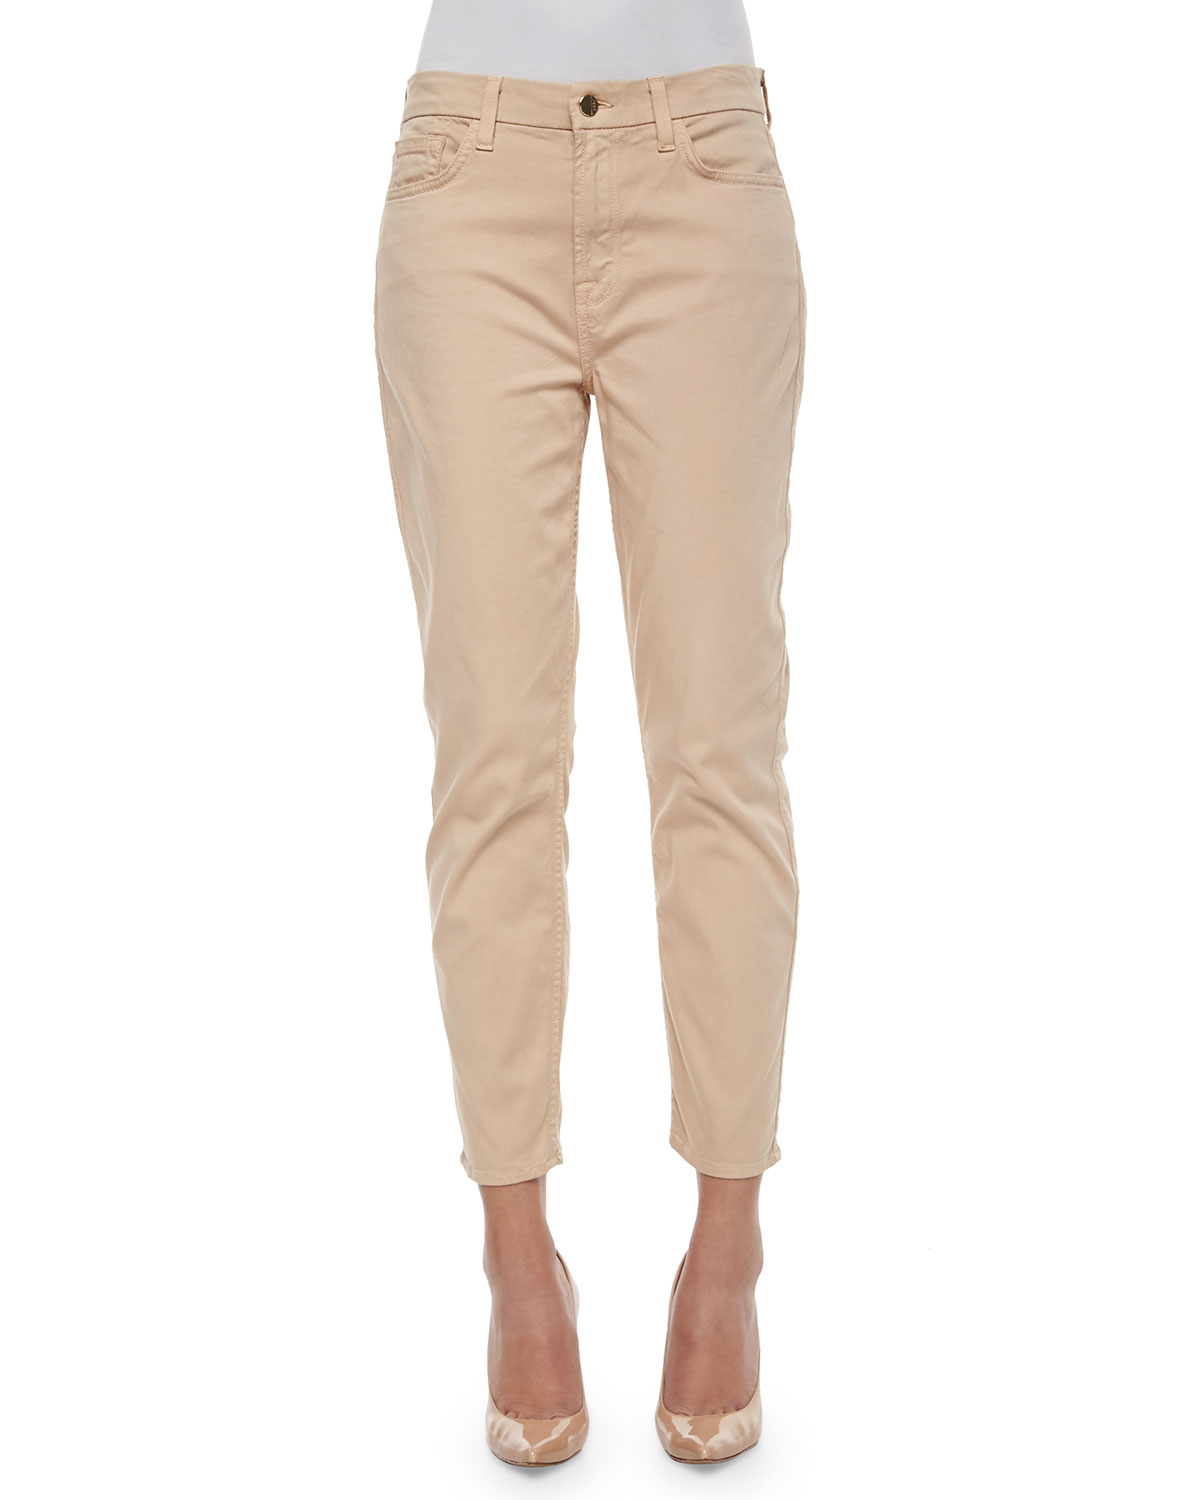 Put together the perfect outfit with our collection of Men's Khakis and Pants in a variety of fits and styles at American Eagle Outfitters. t Level Flex Ripped Jeans Patched Jeans Light Wash Jeans Medium Wash Jeans Dark Wash Jeans Black Jeans Non Stretch Jeans t Level Skinny Khaki Pant Regular Price $ Sale Price $ Launch.